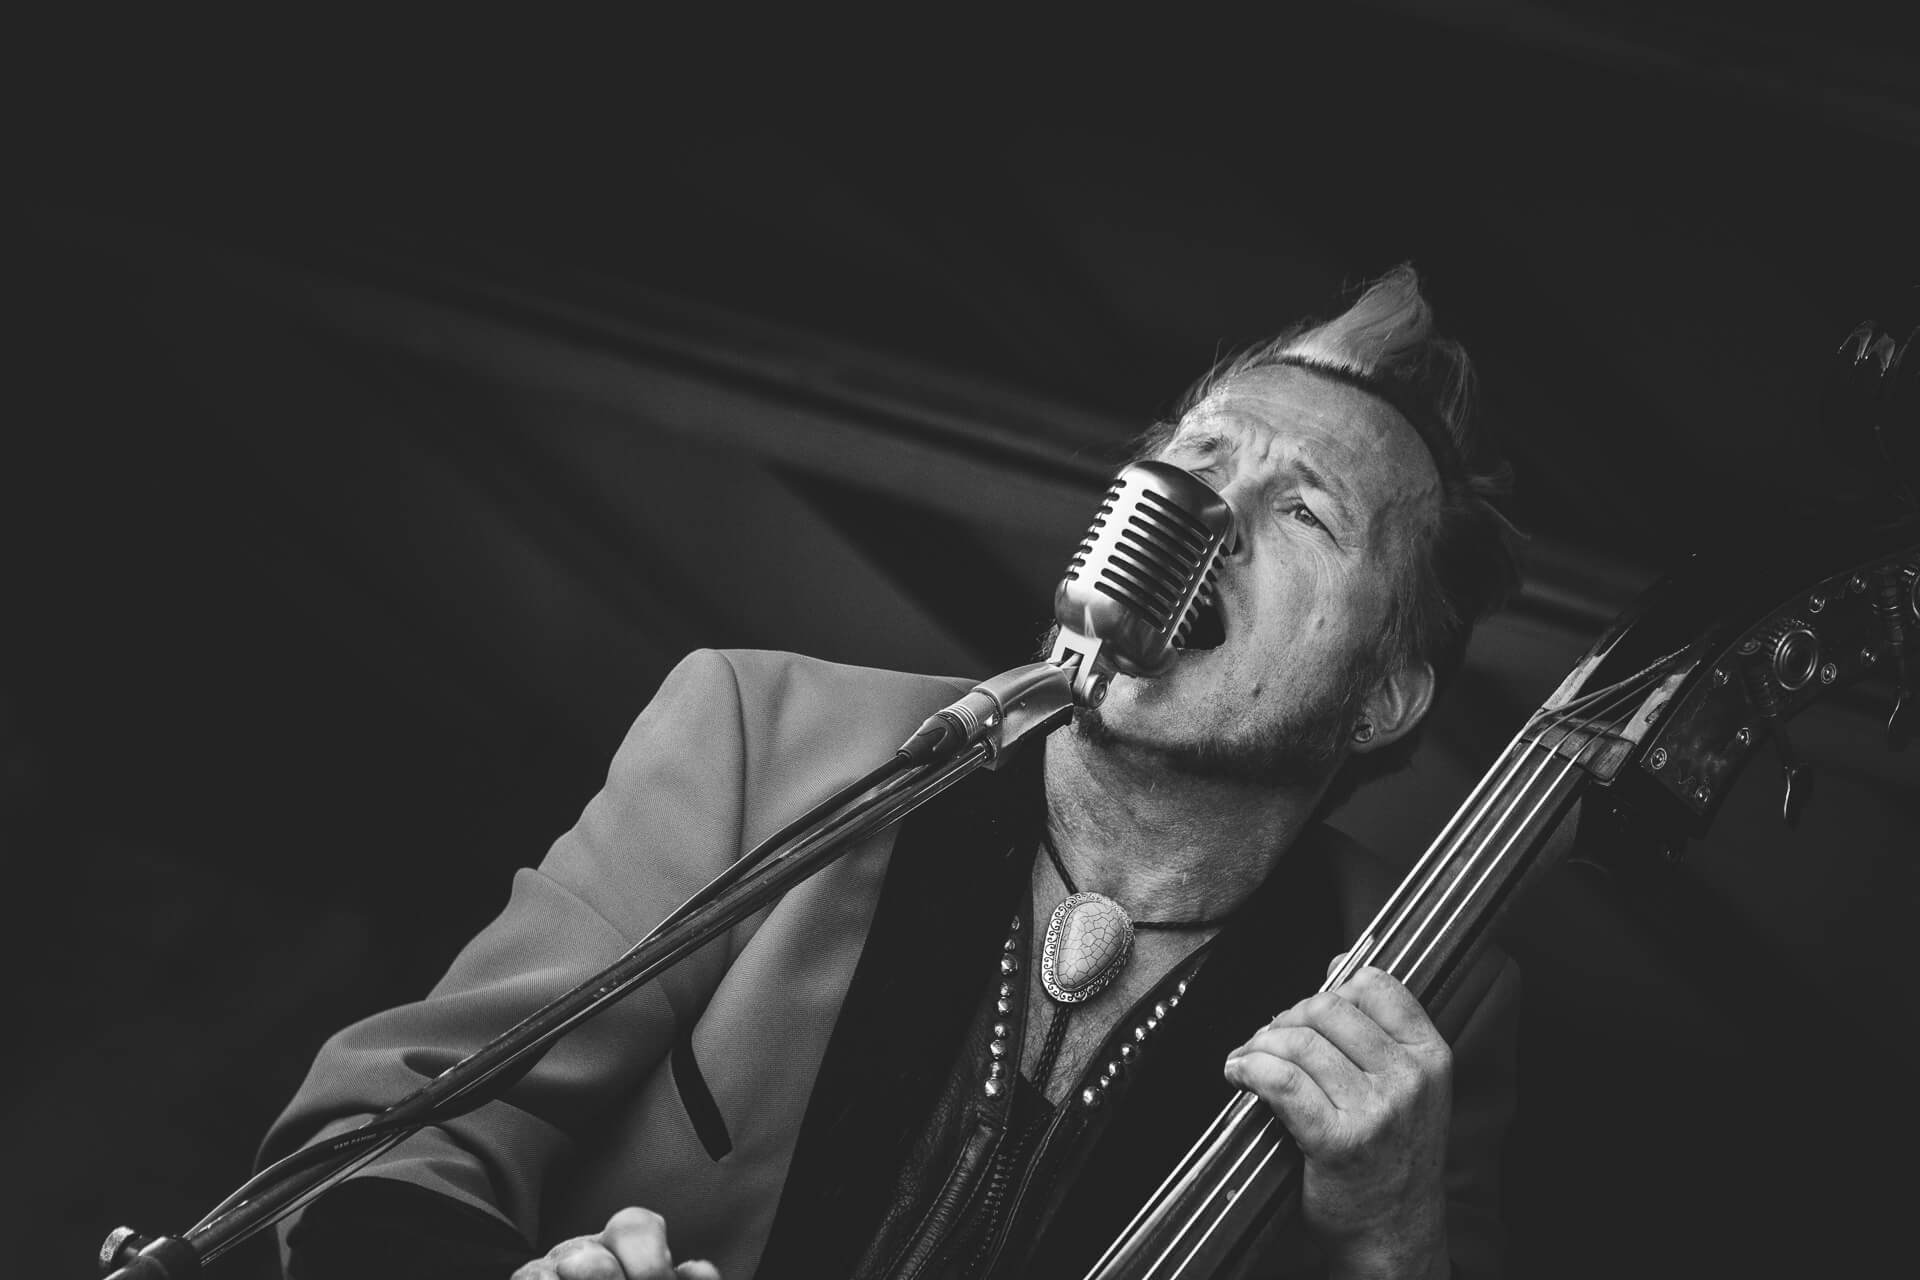 A Black & White close up photograph of Gaz Le Bass of The Delray Rockets in a drape jacket singing on stage at The Drunken Monkey Festival